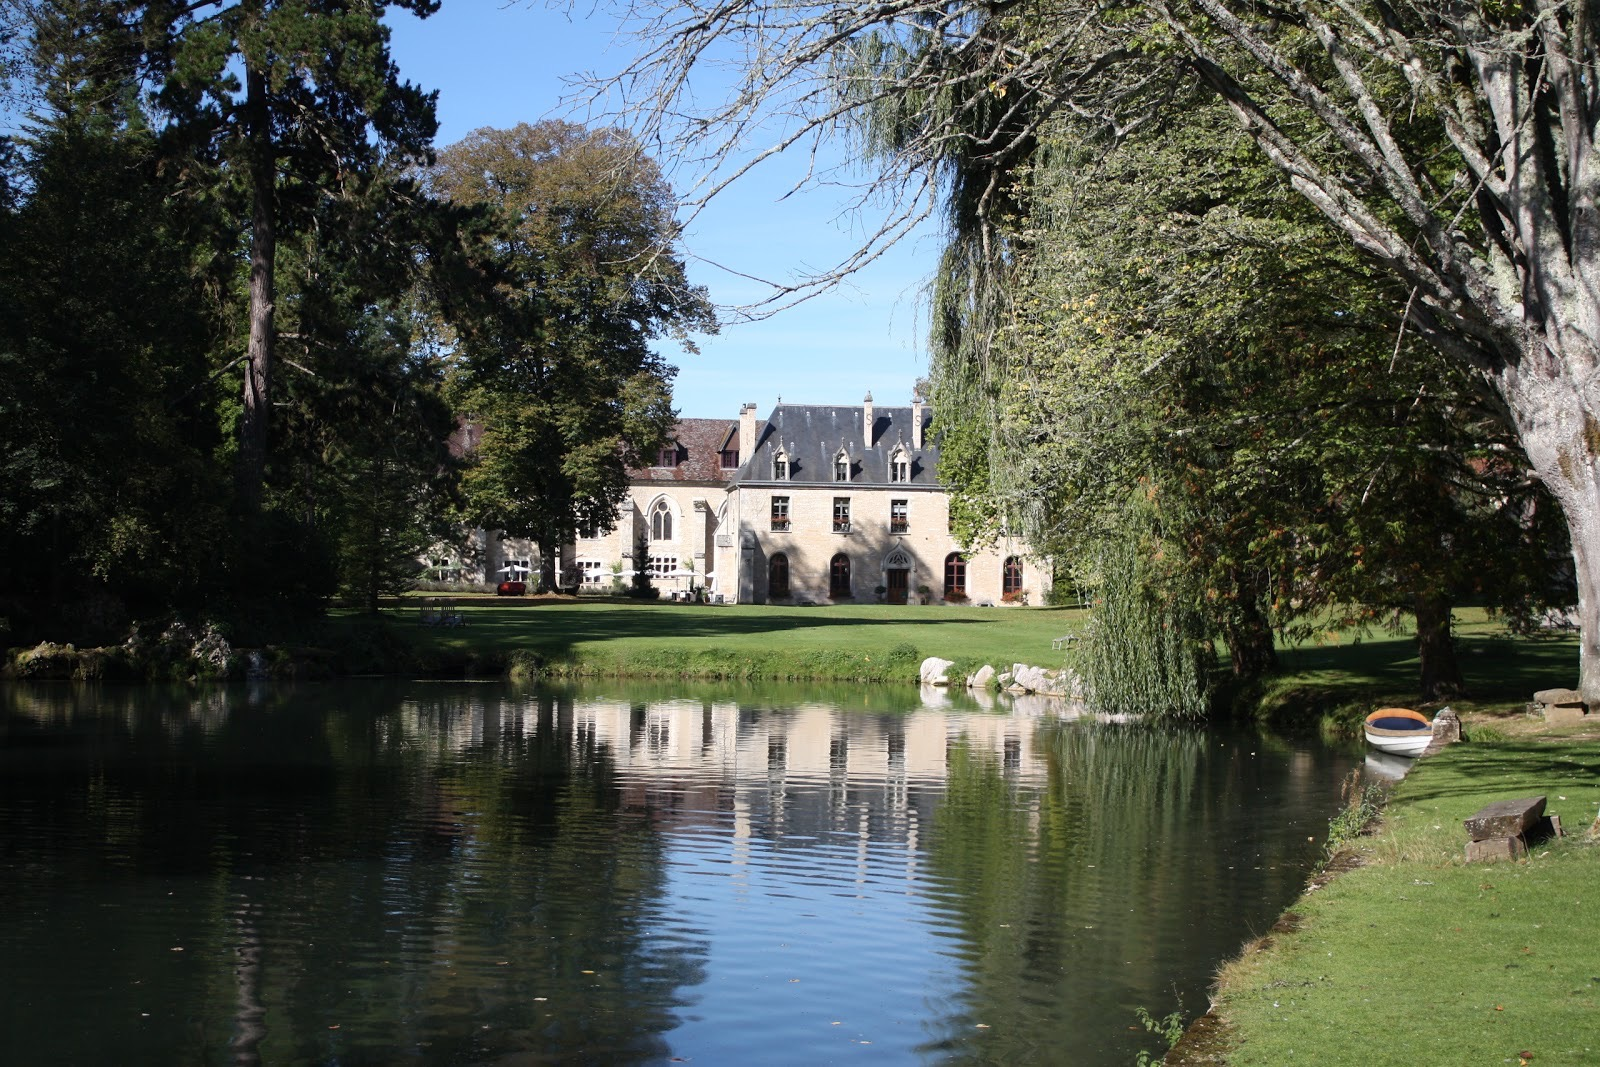 The front of the Abbaye de la Bussiere